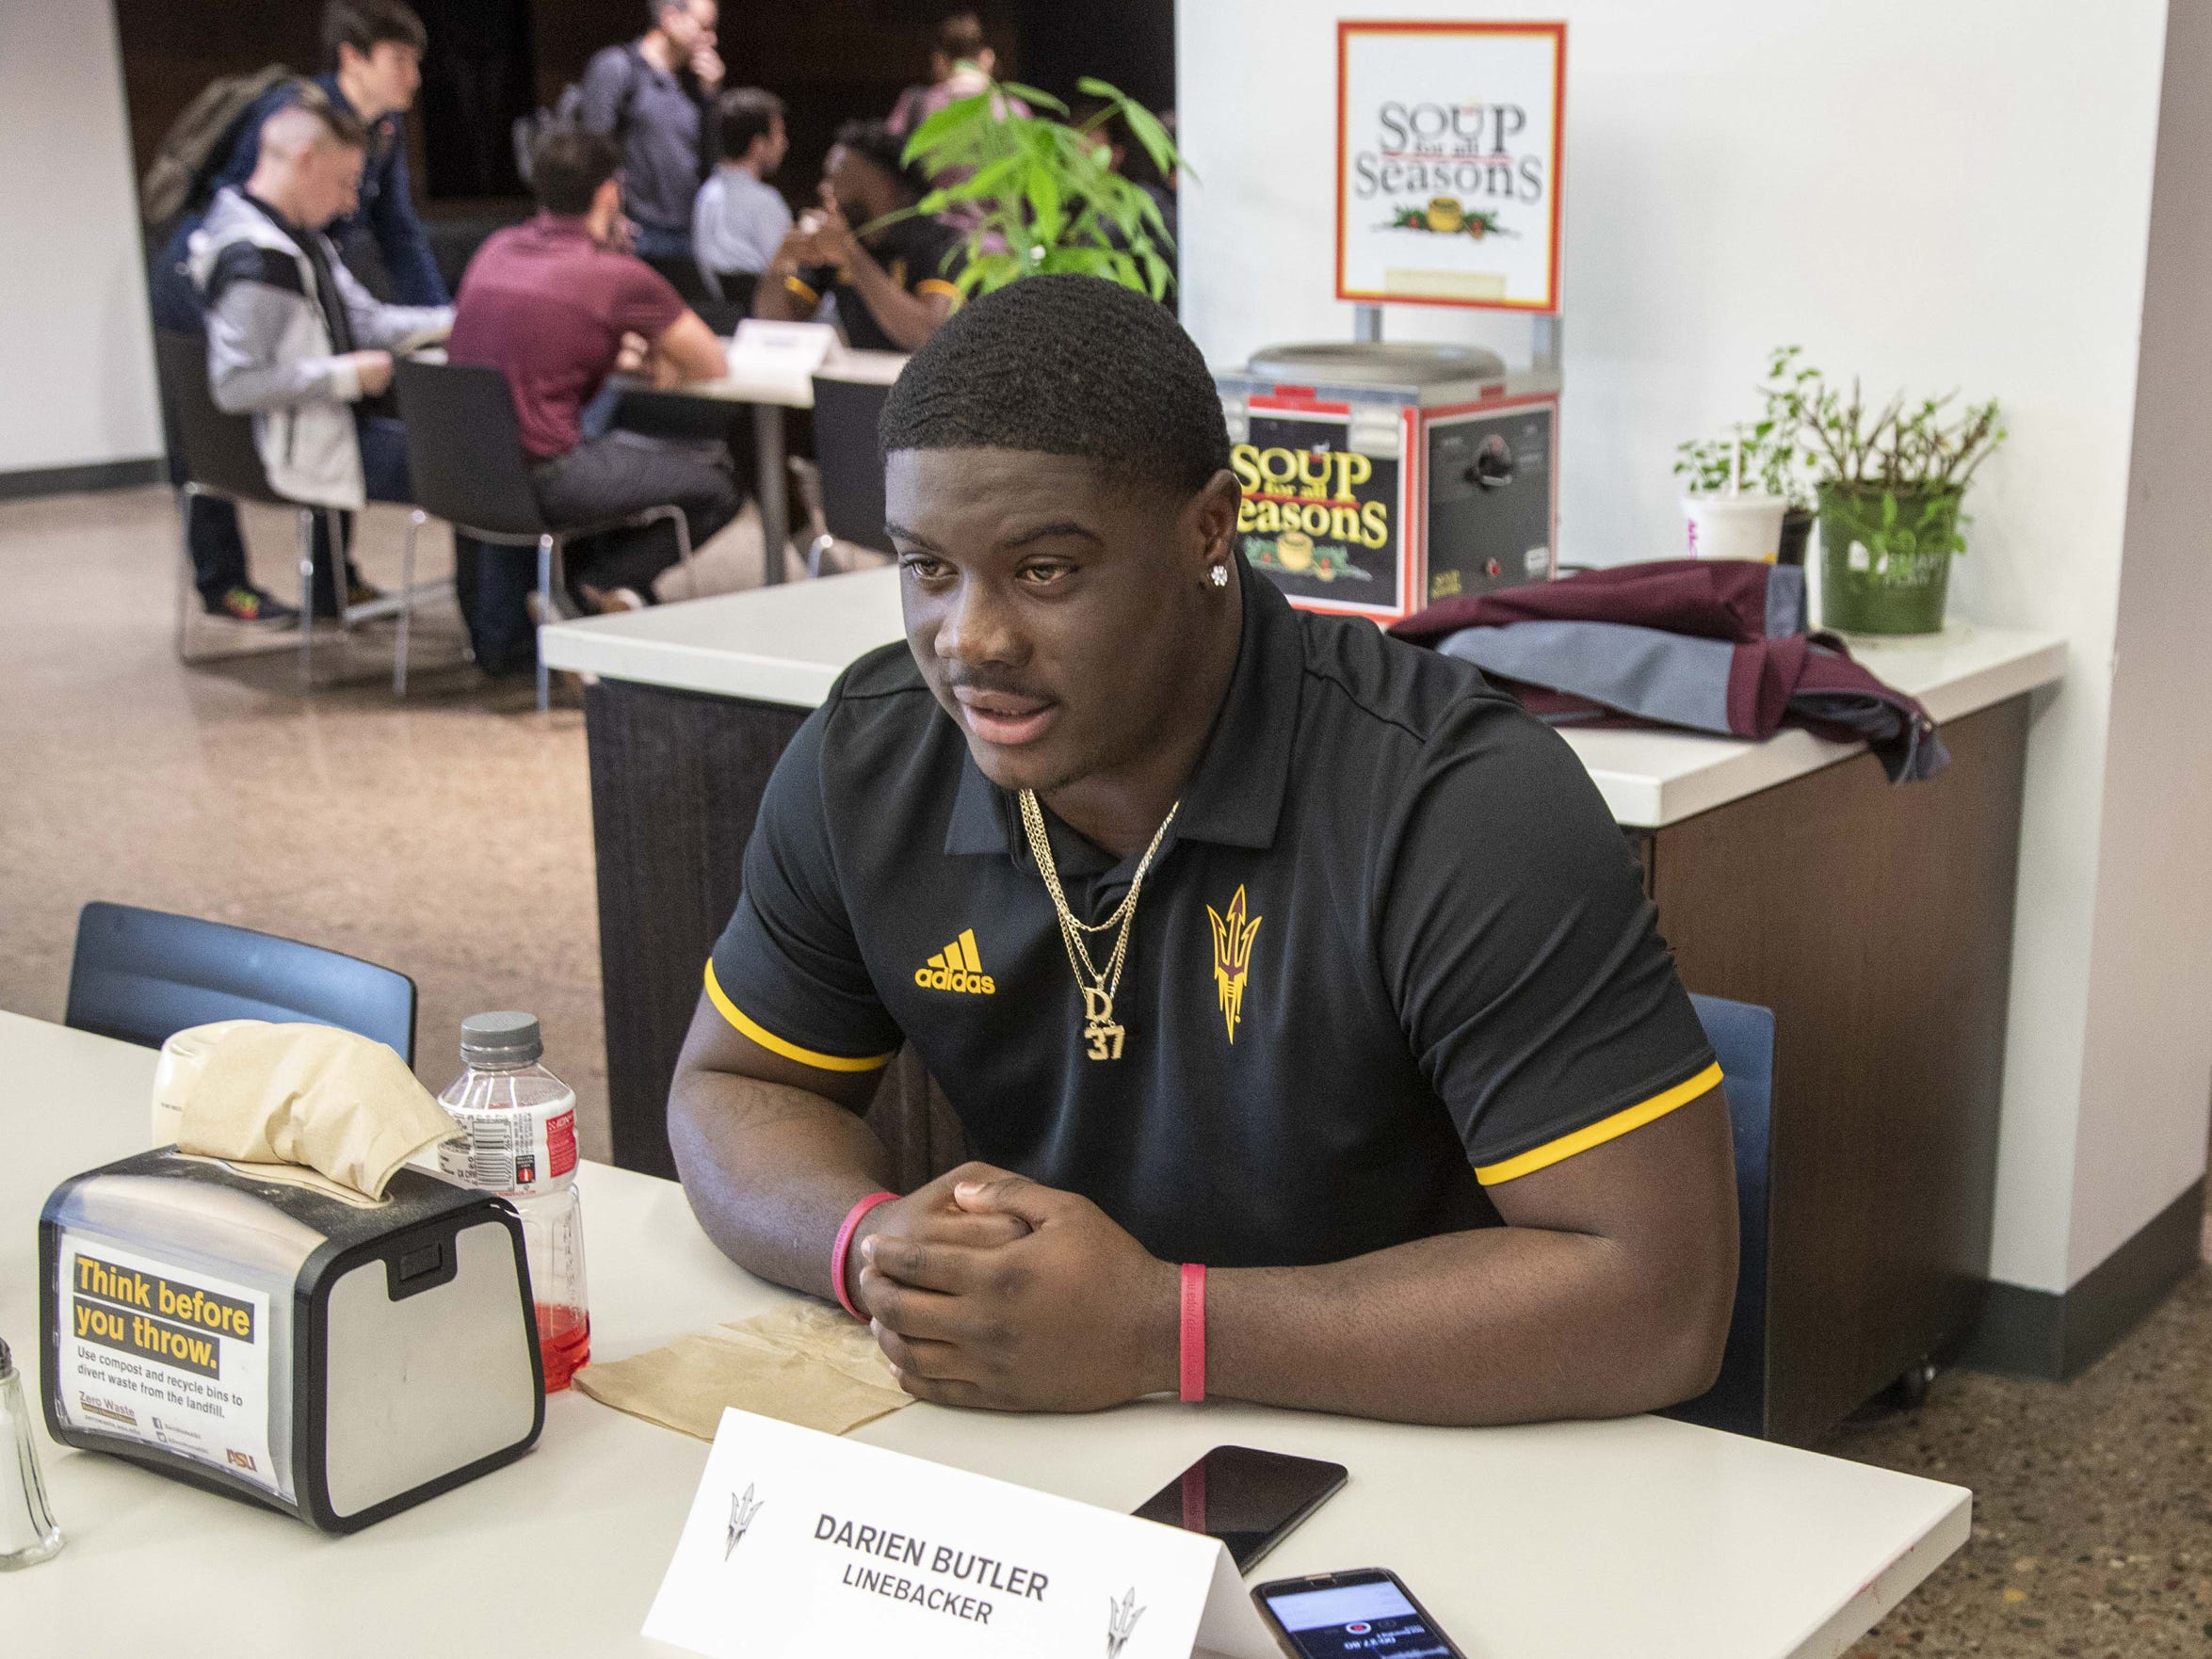 ASU Linebacker Darien Butler during the ASU Spring Football media day at ASU Tempe campus.